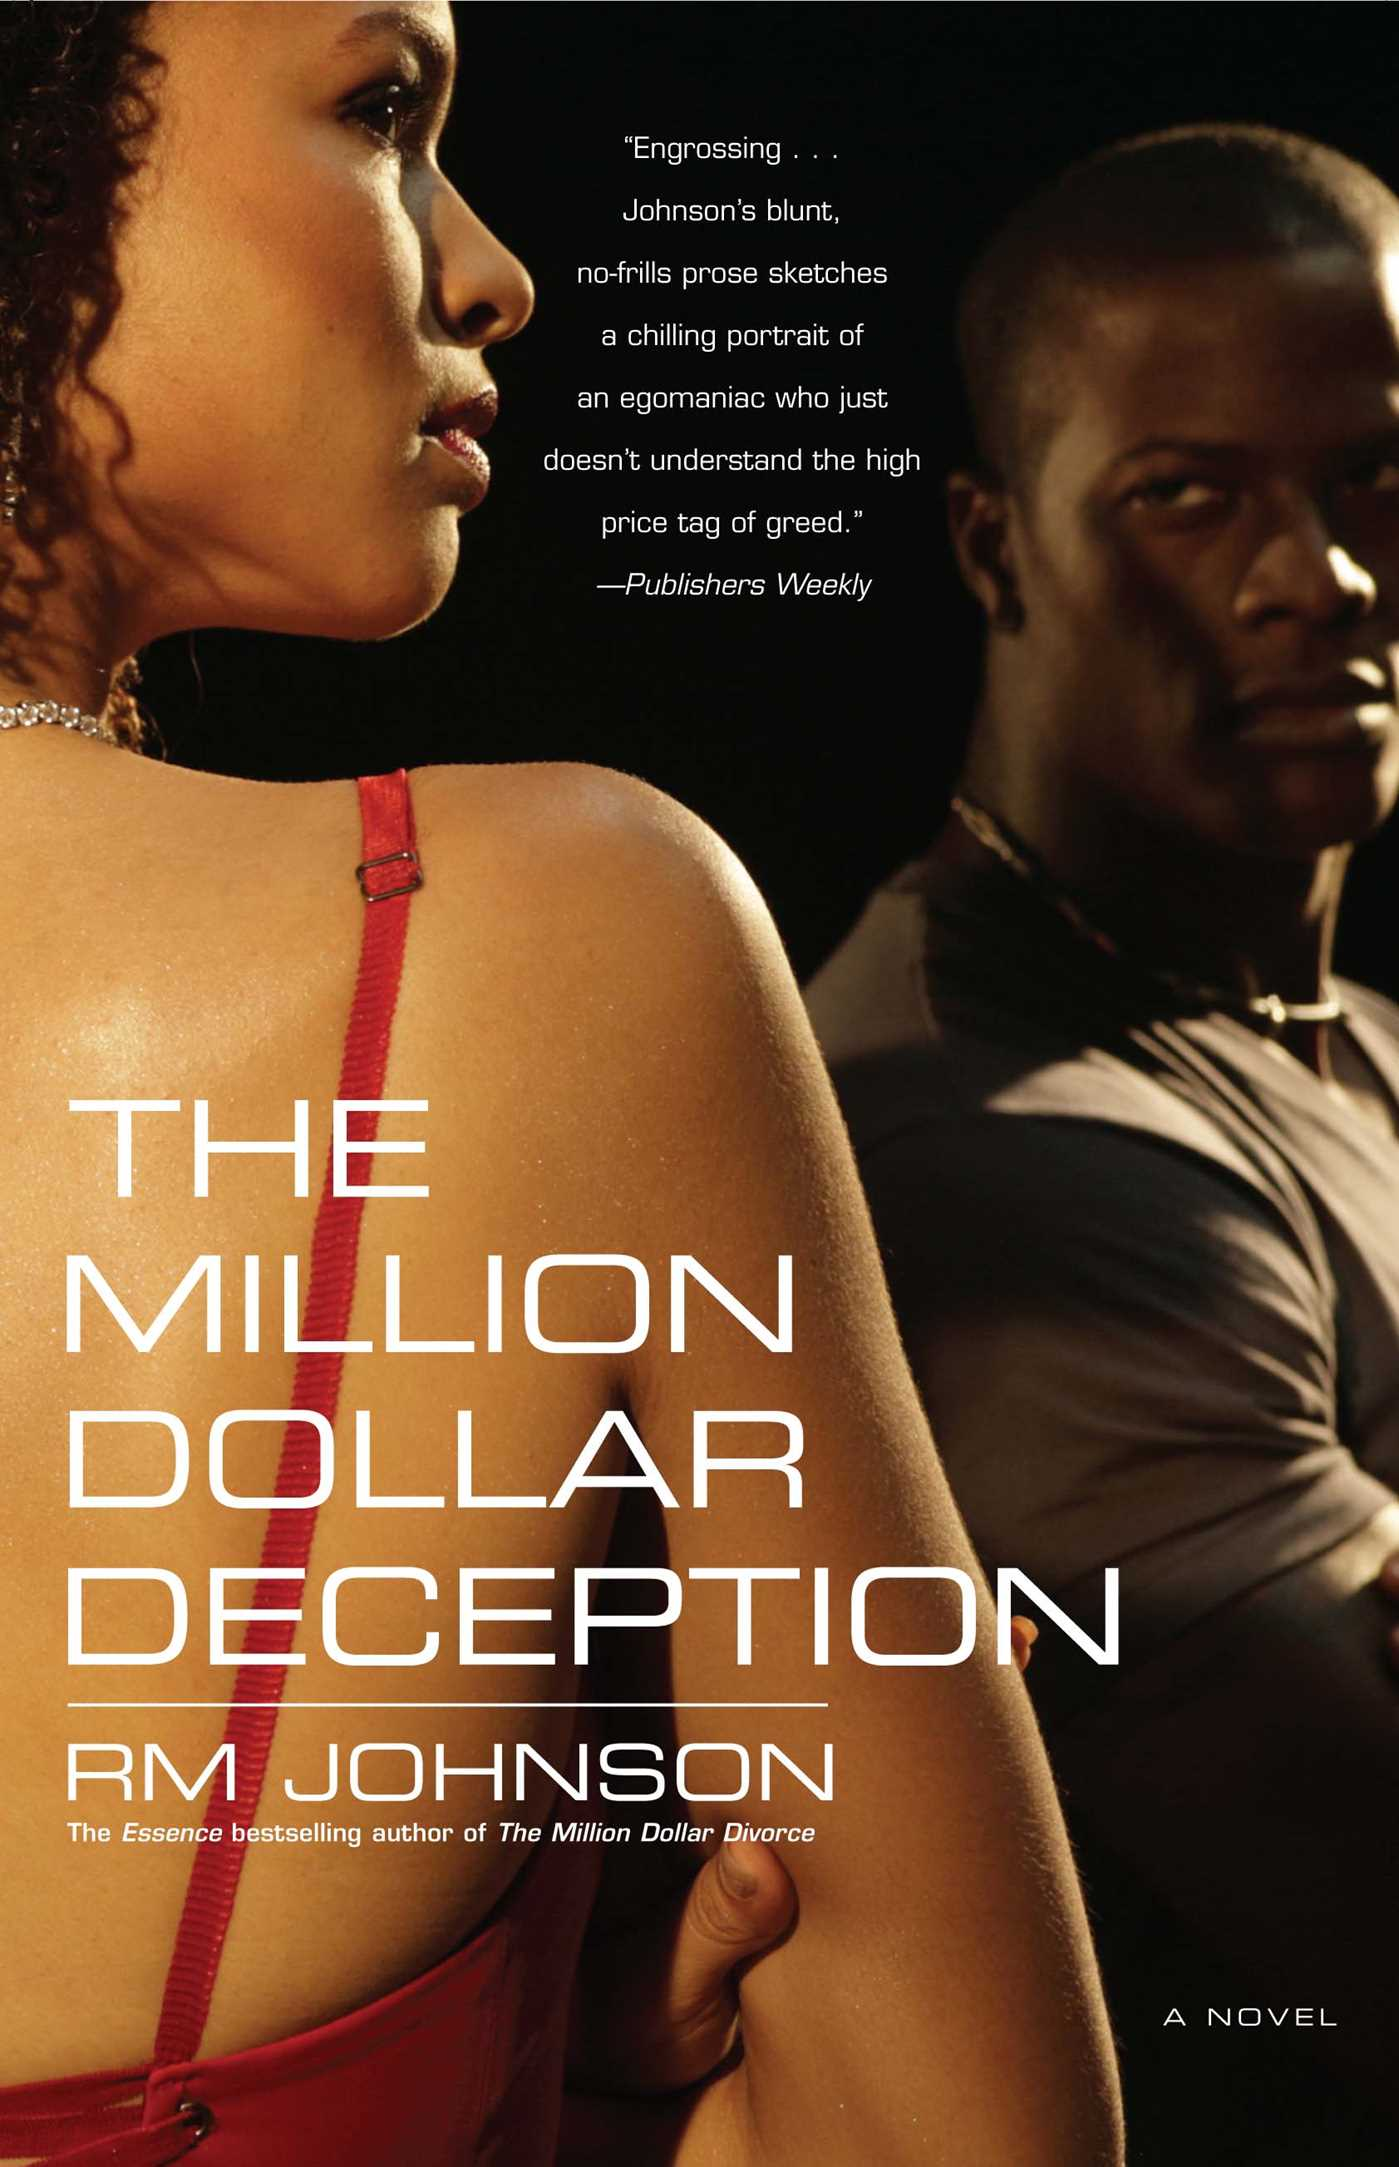 Million-dollar-deception-9781416540410_hr